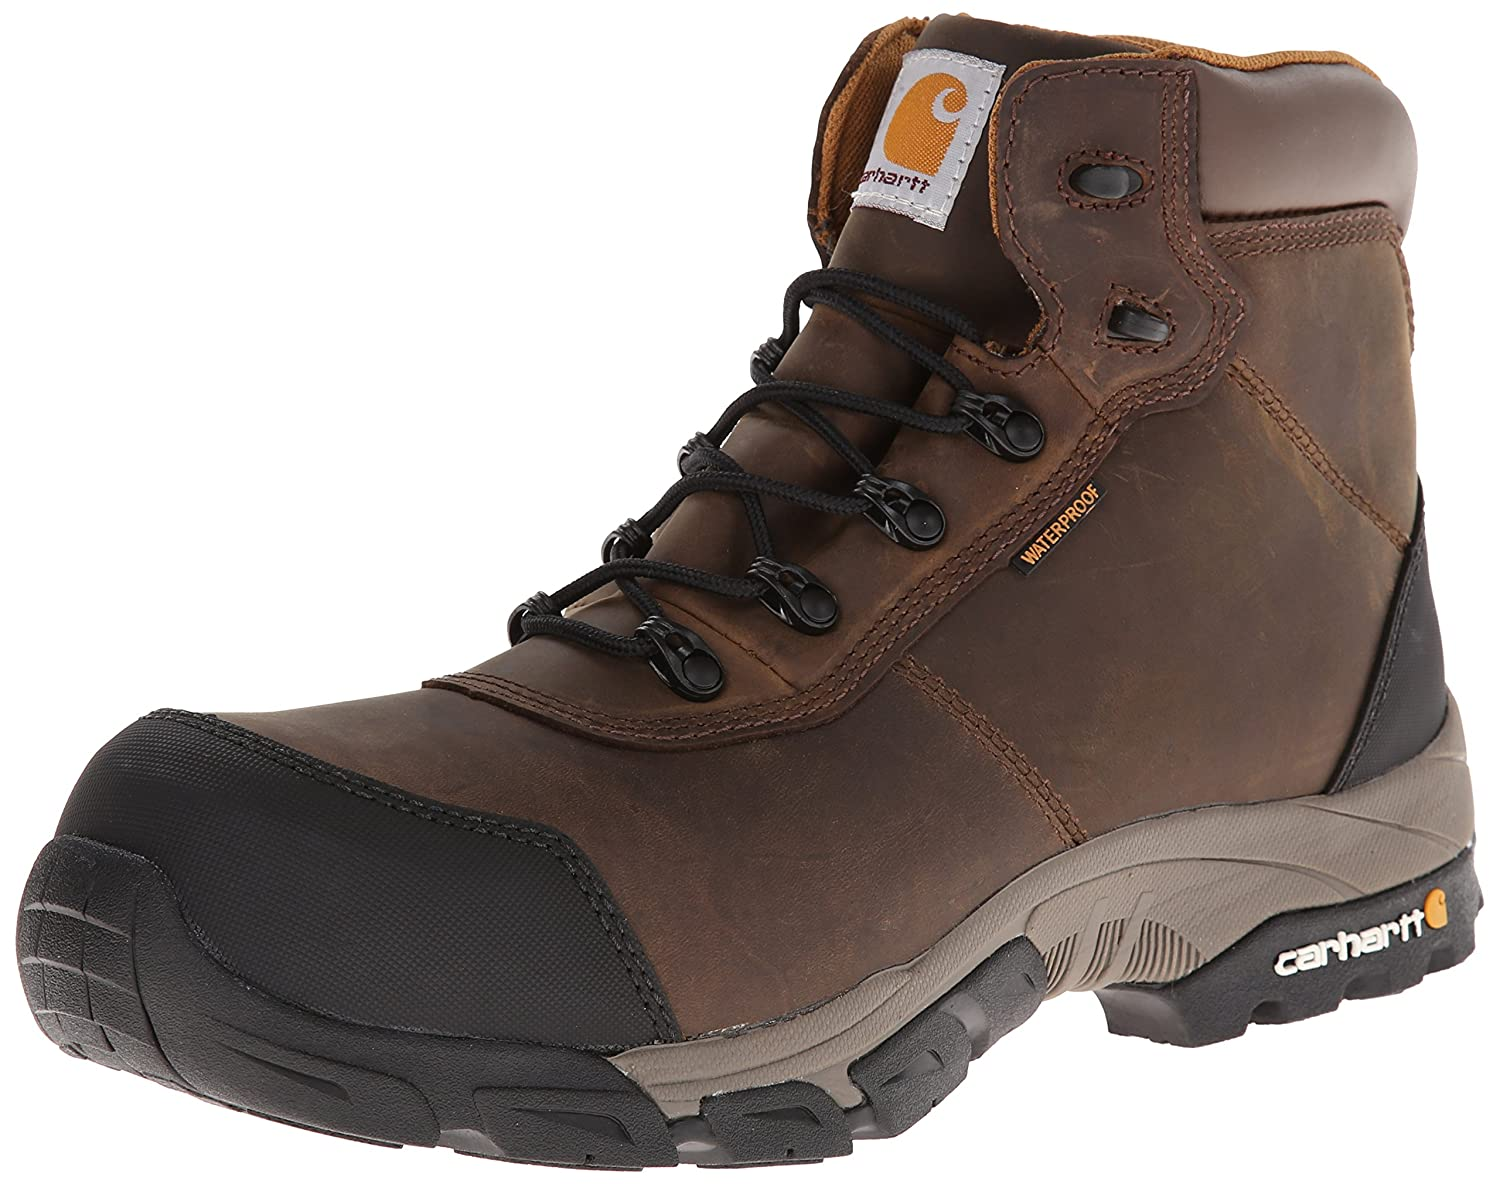 Carhartt メンズ B00DY9Y7QC  Brown Oil Tanned Leather 8 D(M) US